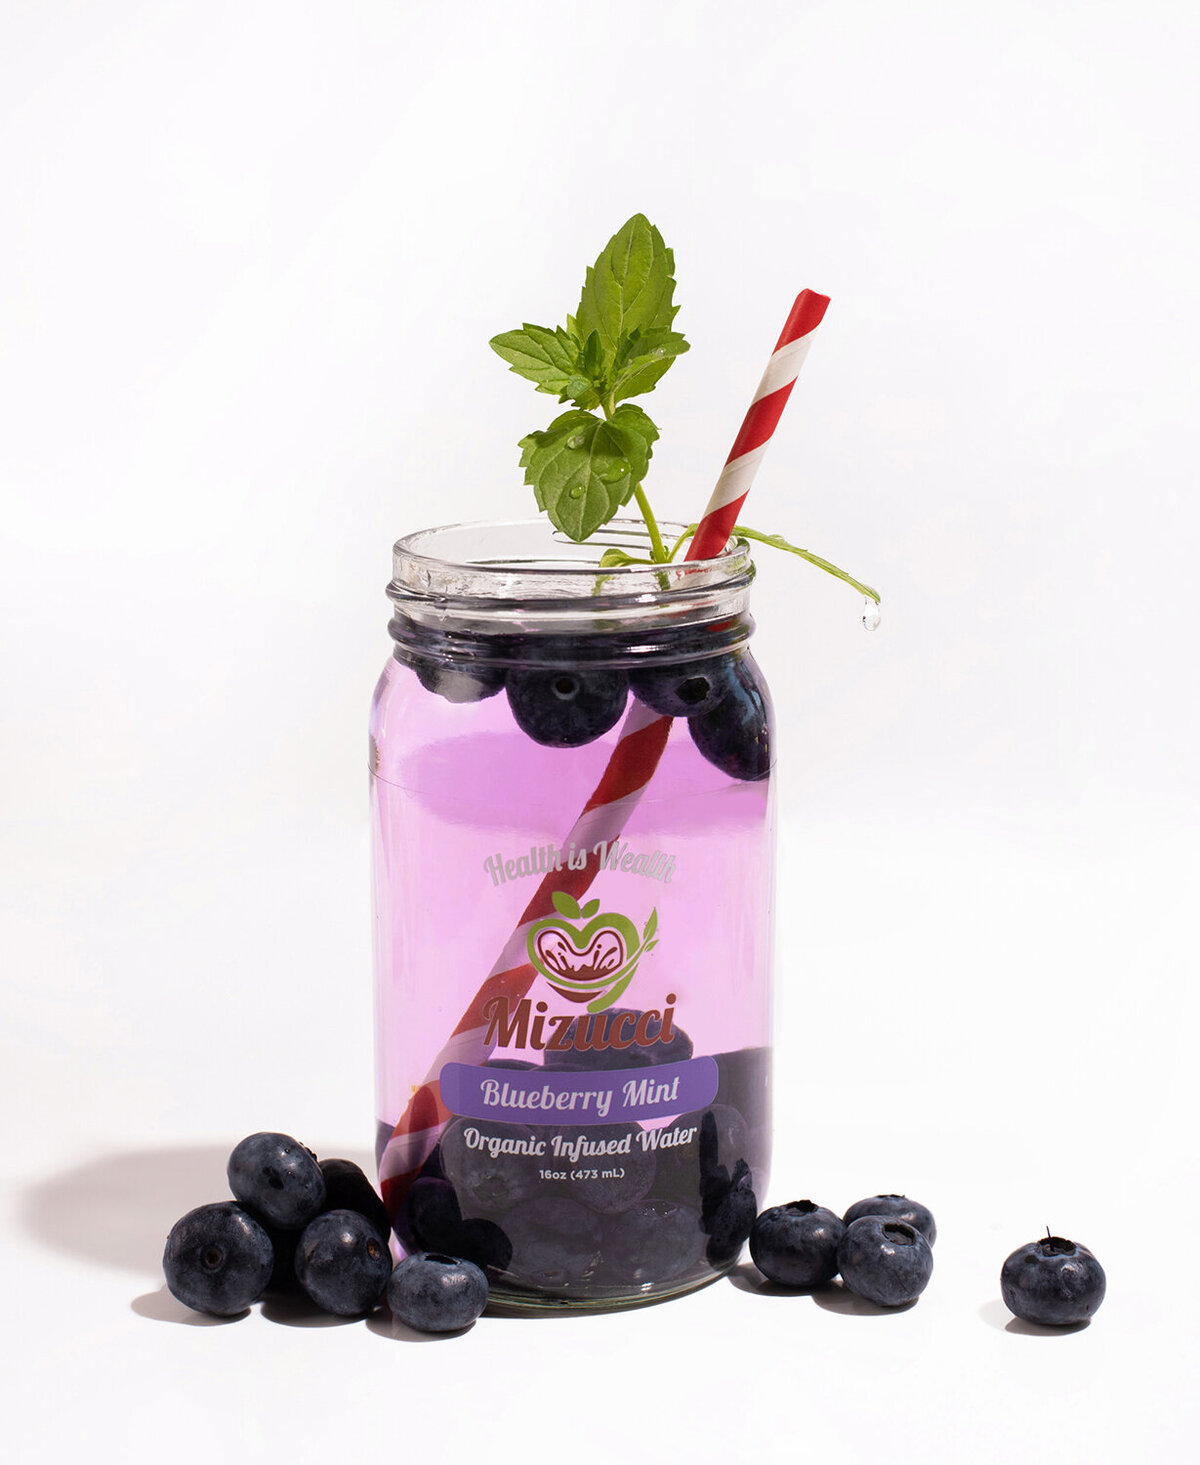 infused water product photography los angeles